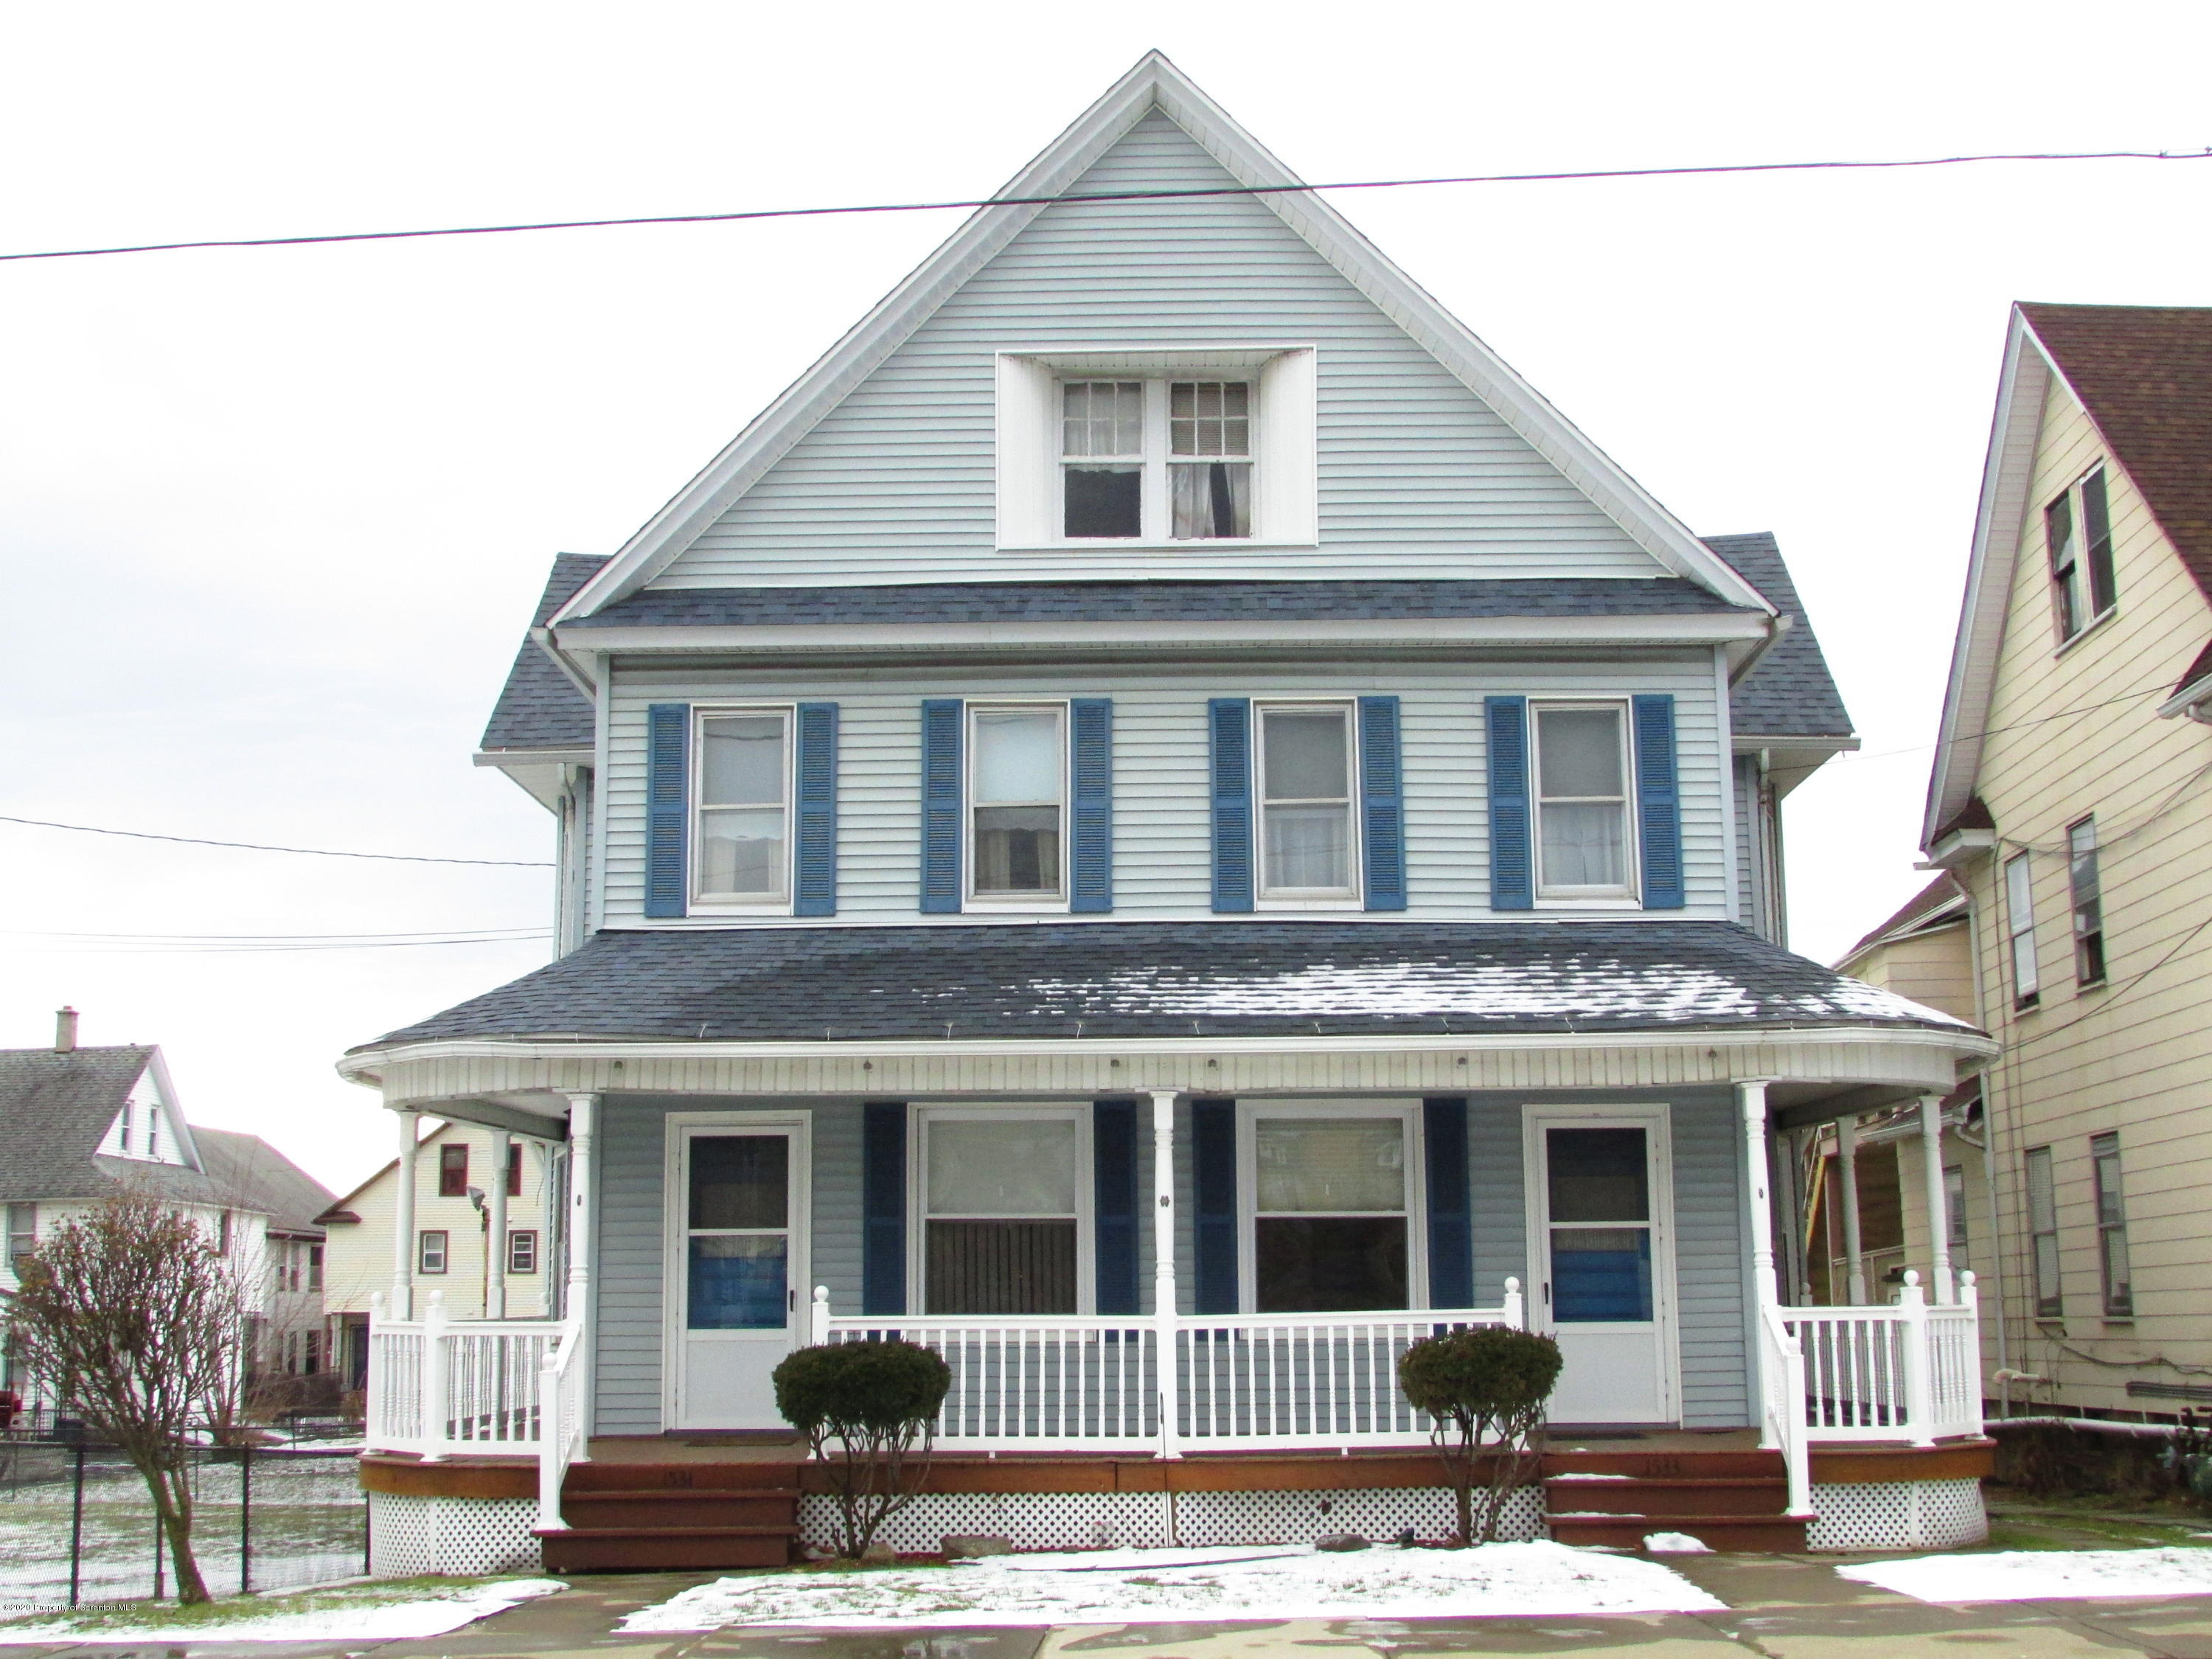 1531-1533 Washburn St, Scranton, Pennsylvania 18504, ,Multi-Family,For Sale,Washburn St,20-120